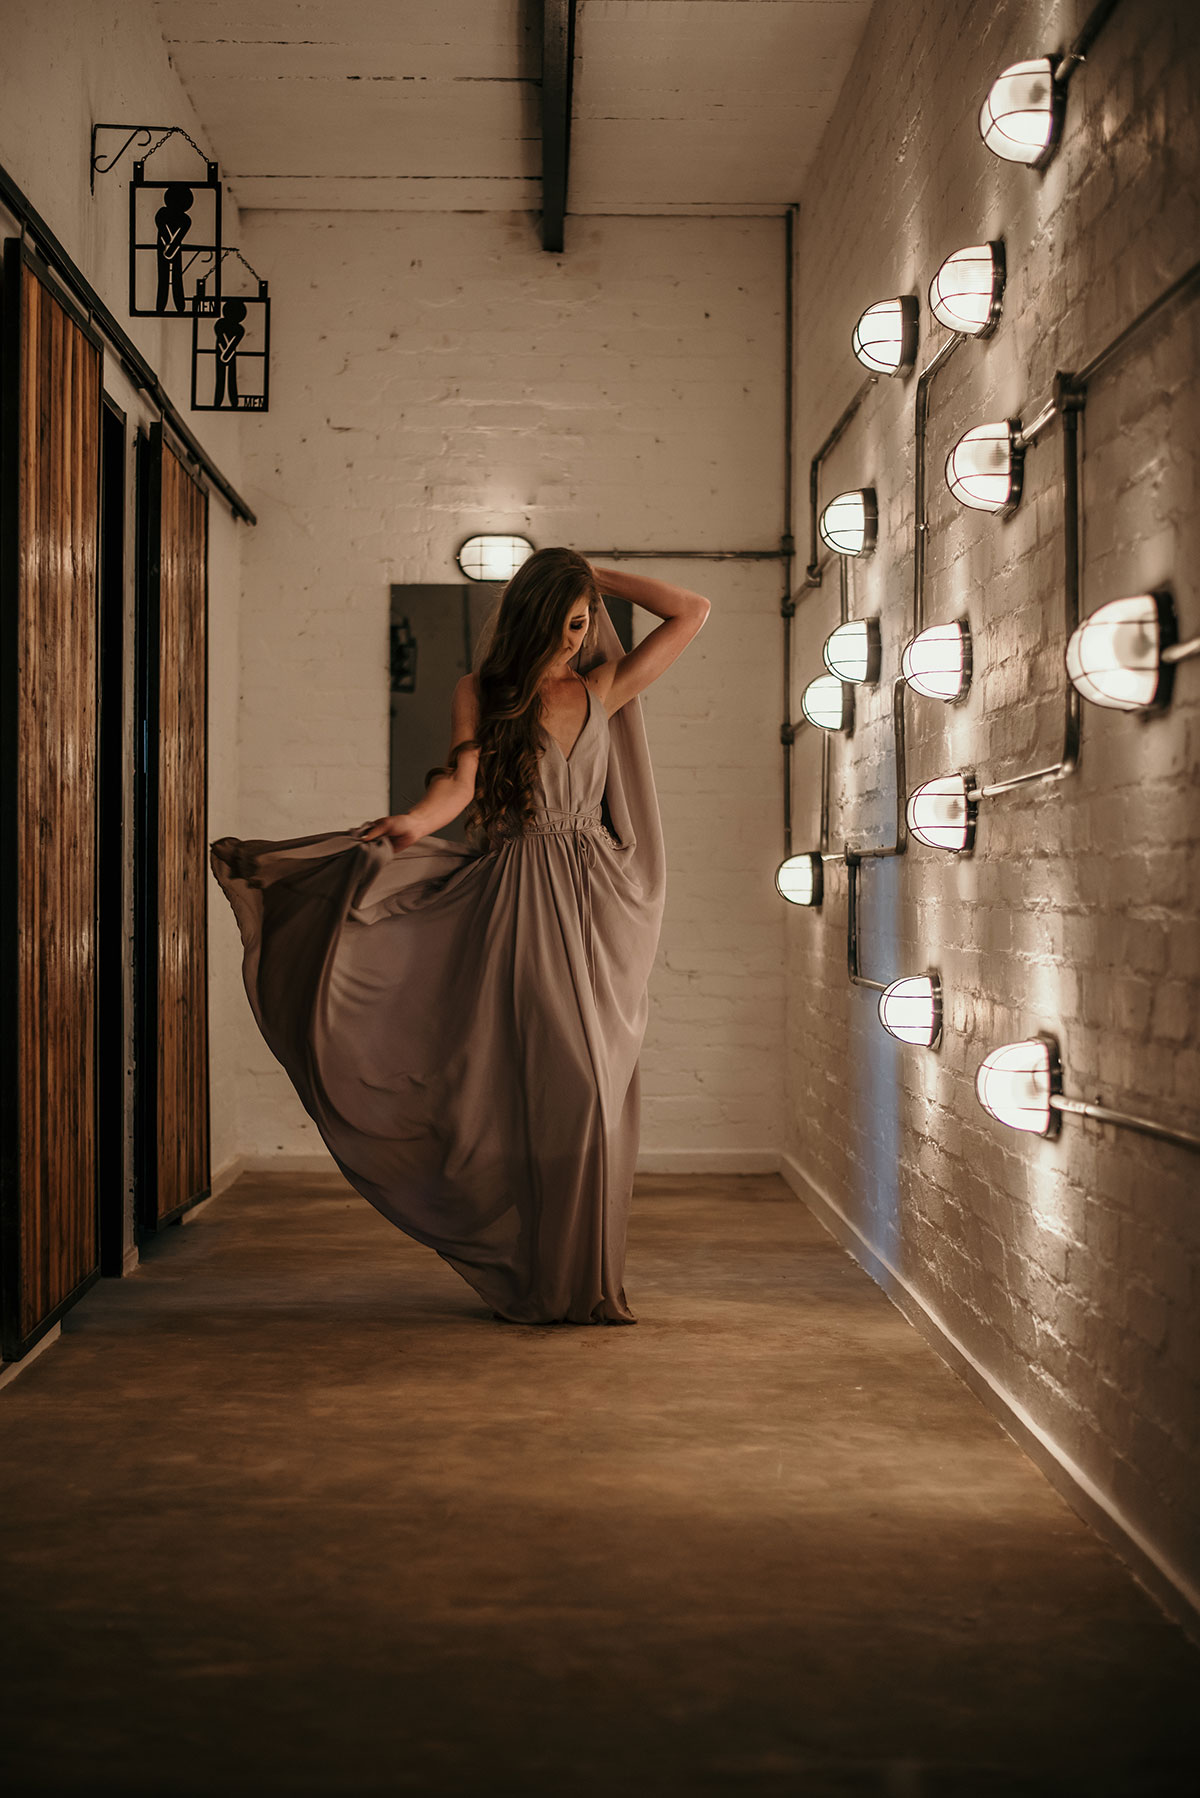 Flowing dress in Industrial setting at The Nut Farm Venue by Echo Photography